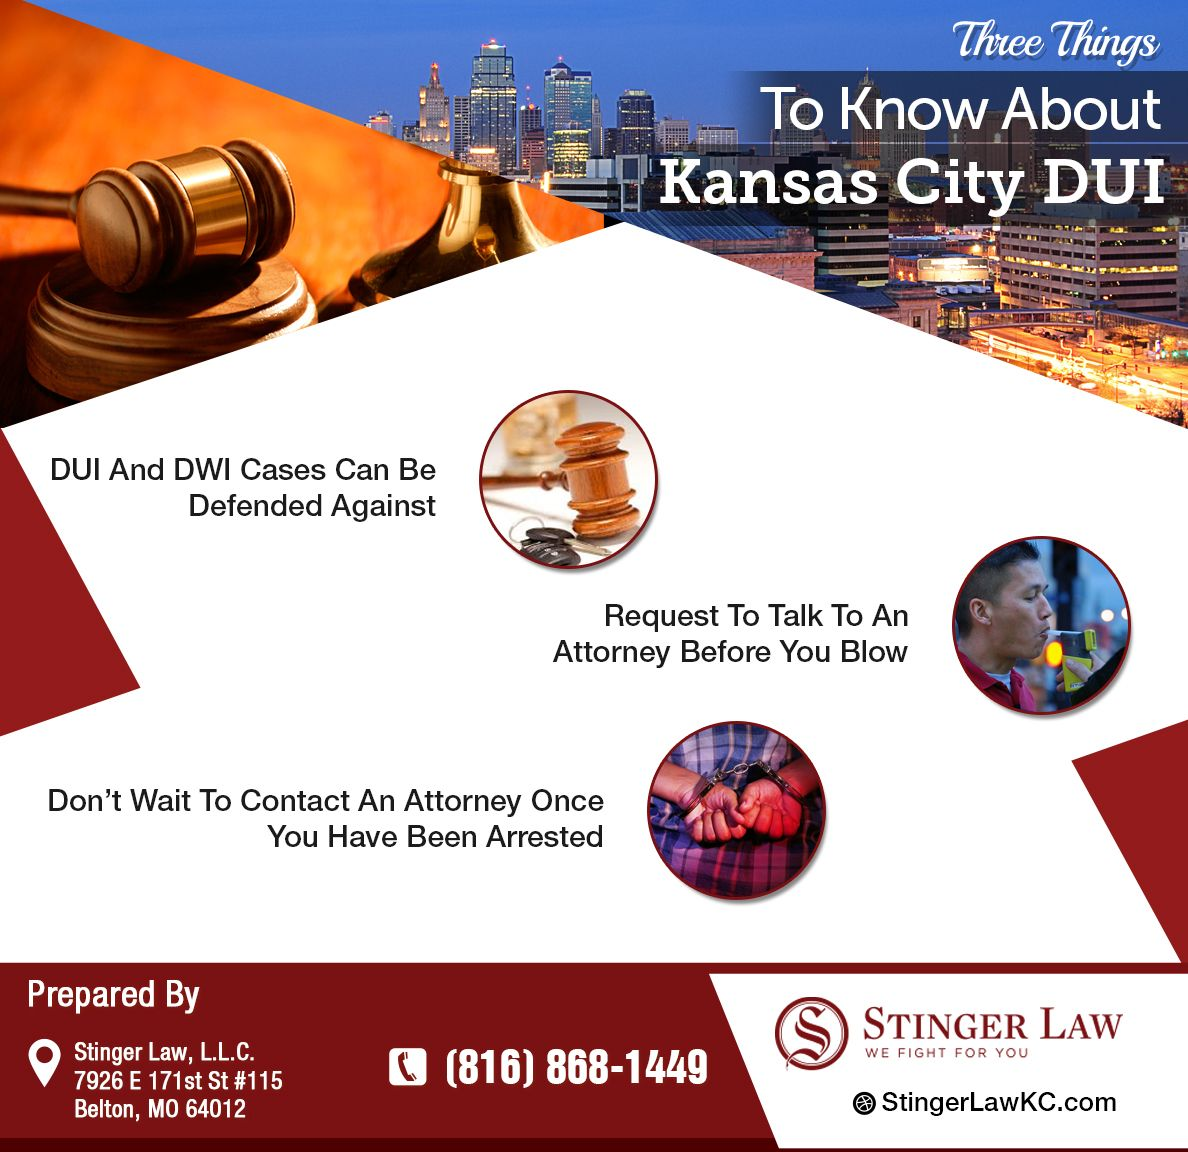 Dwi Penalties In Missouri Kansas City Dwi Lawyers Dwi Lawyer